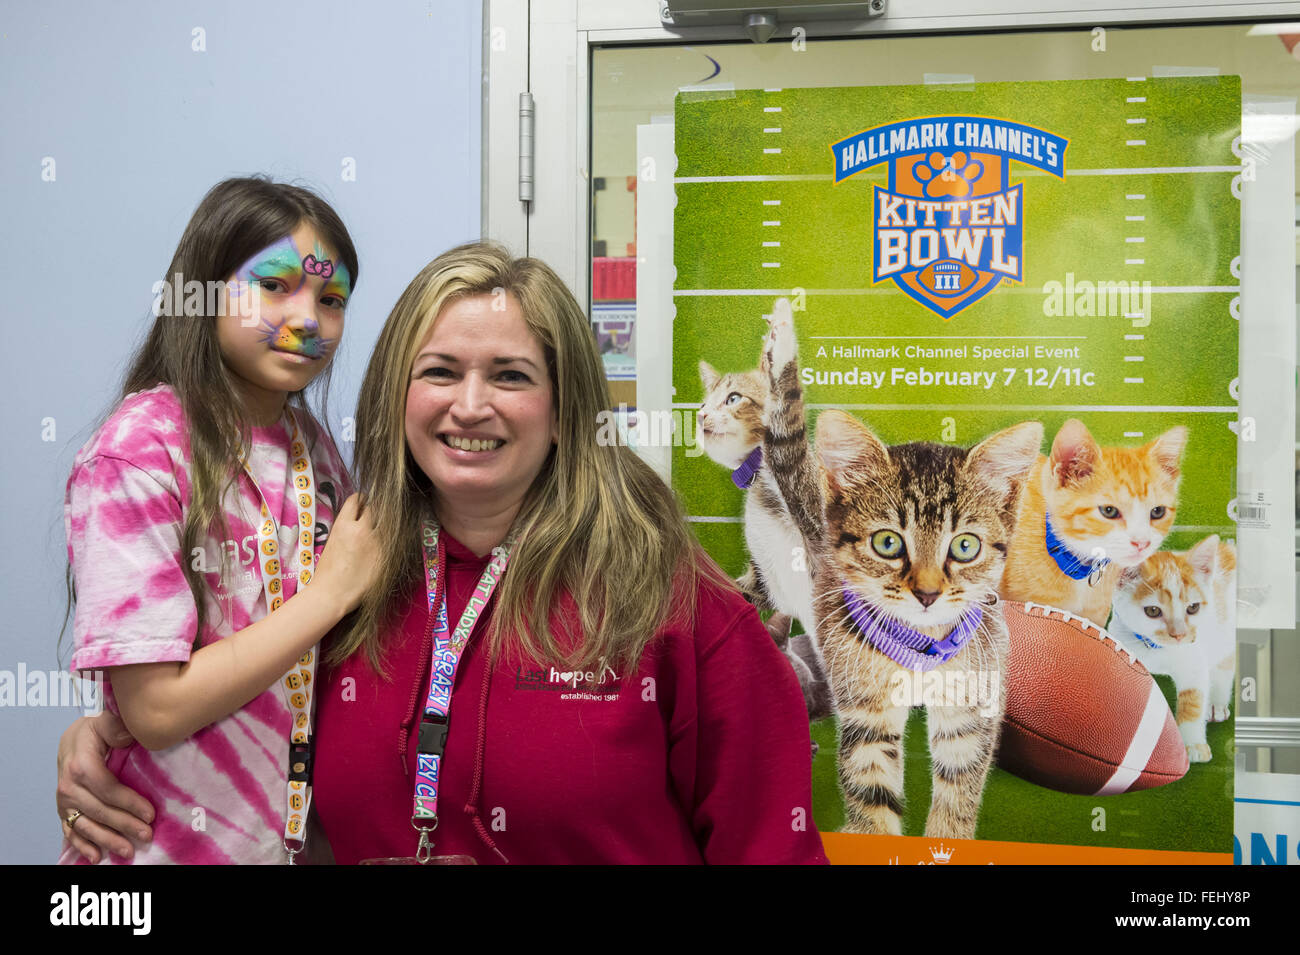 Wantagh, New York, USA. 7th Feb, 2016. SUZANNE FERRARA, with her face painted, and her mother STACY FERRARA, of - Stock Image